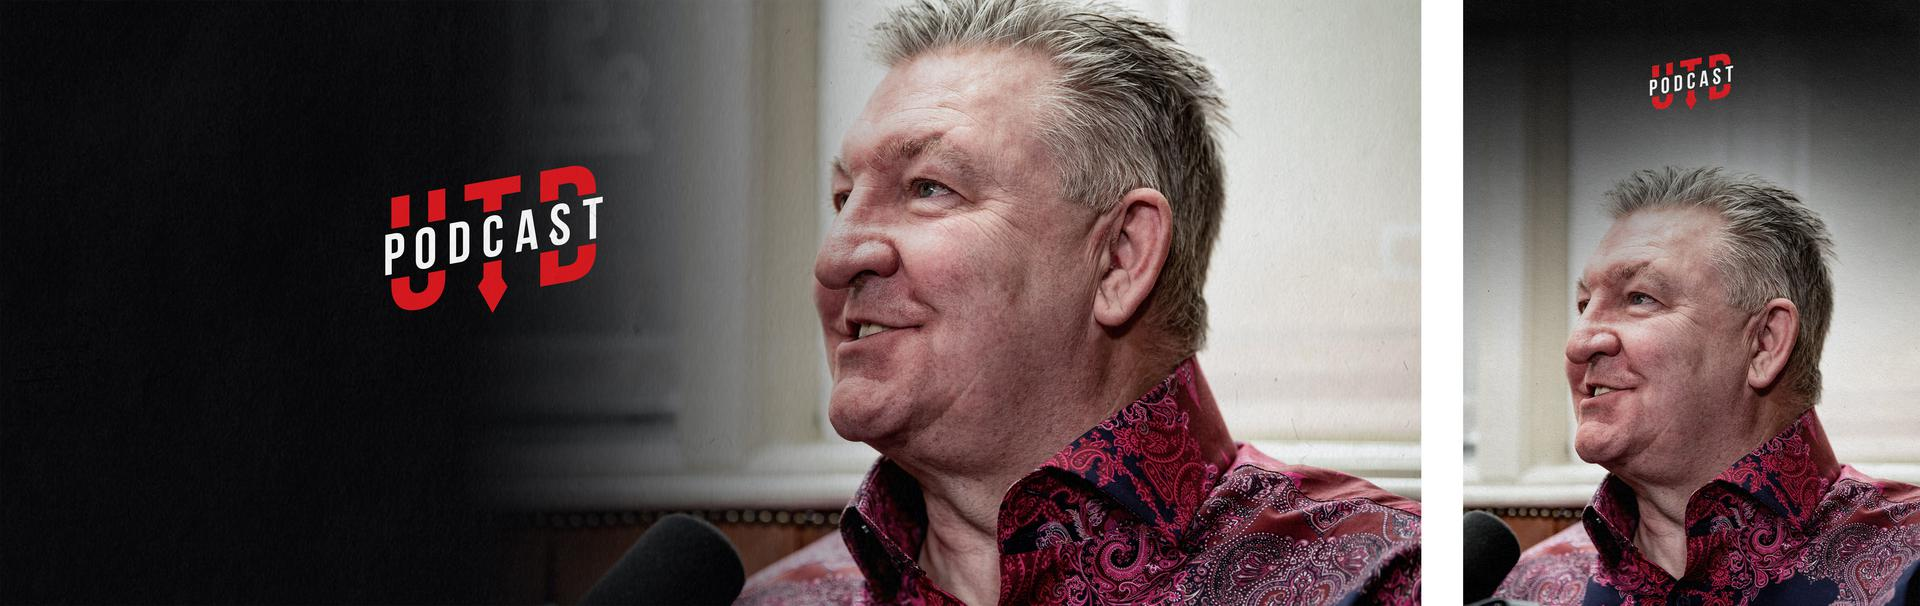 Norman Whiteside on UTD Podcast